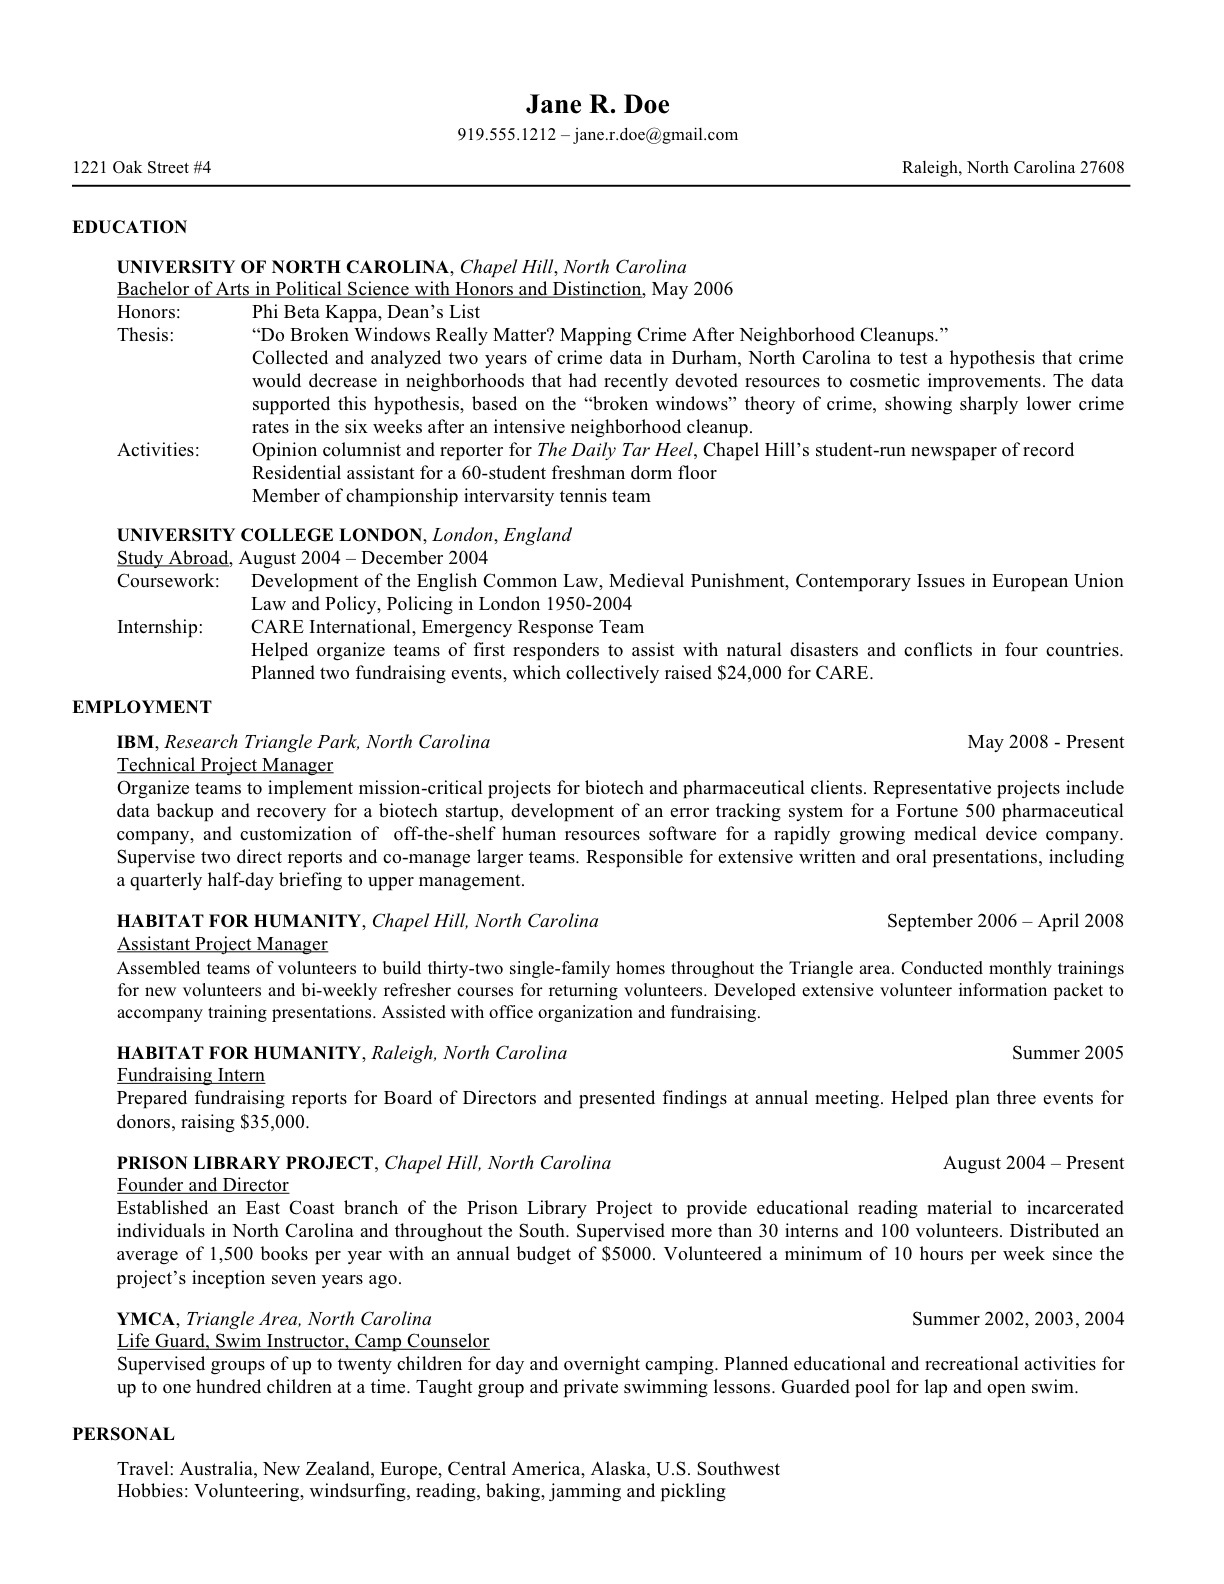 law school resume templates prepping your for of university at abroad work experience on Resume Abroad Work Experience On Resume